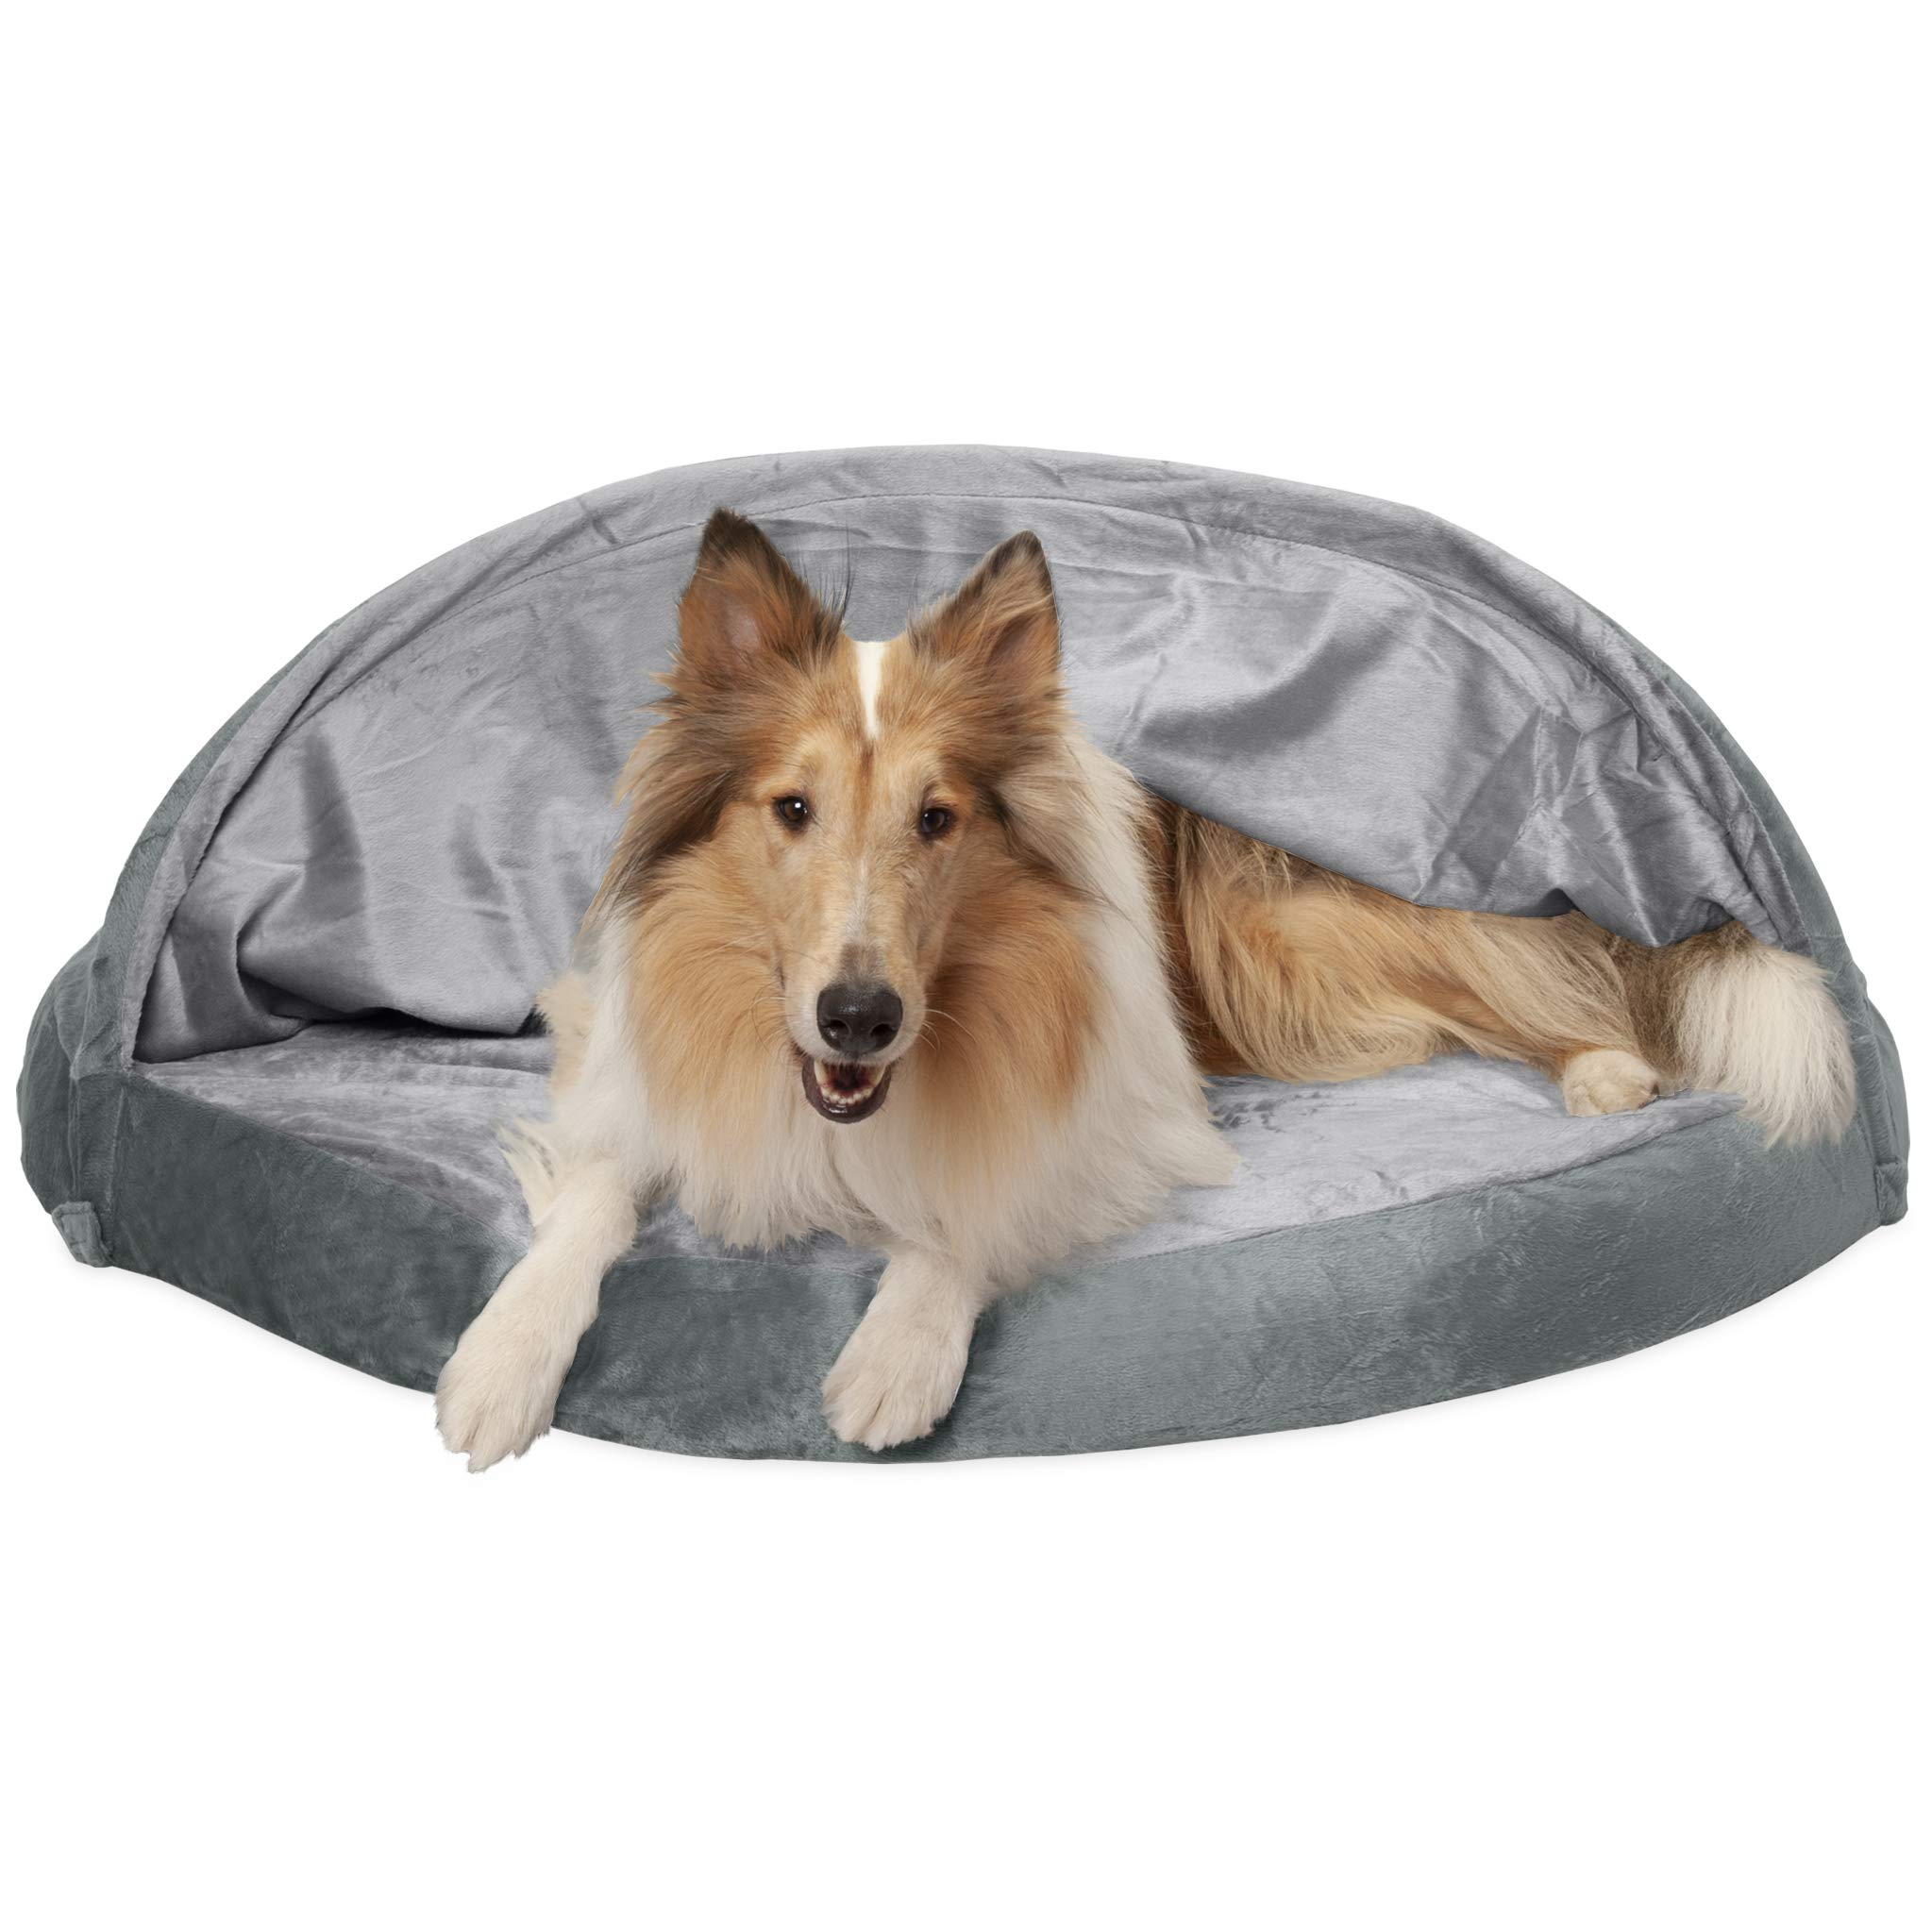 Furhaven Pet Dog Bed | Orthopedic Round Cuddle Nest Micro Velvet Snuggery Blanket Burrow Pet Bed w/ Removable Cover for Dogs & Cats, Silver, 44-Inch by Furhaven